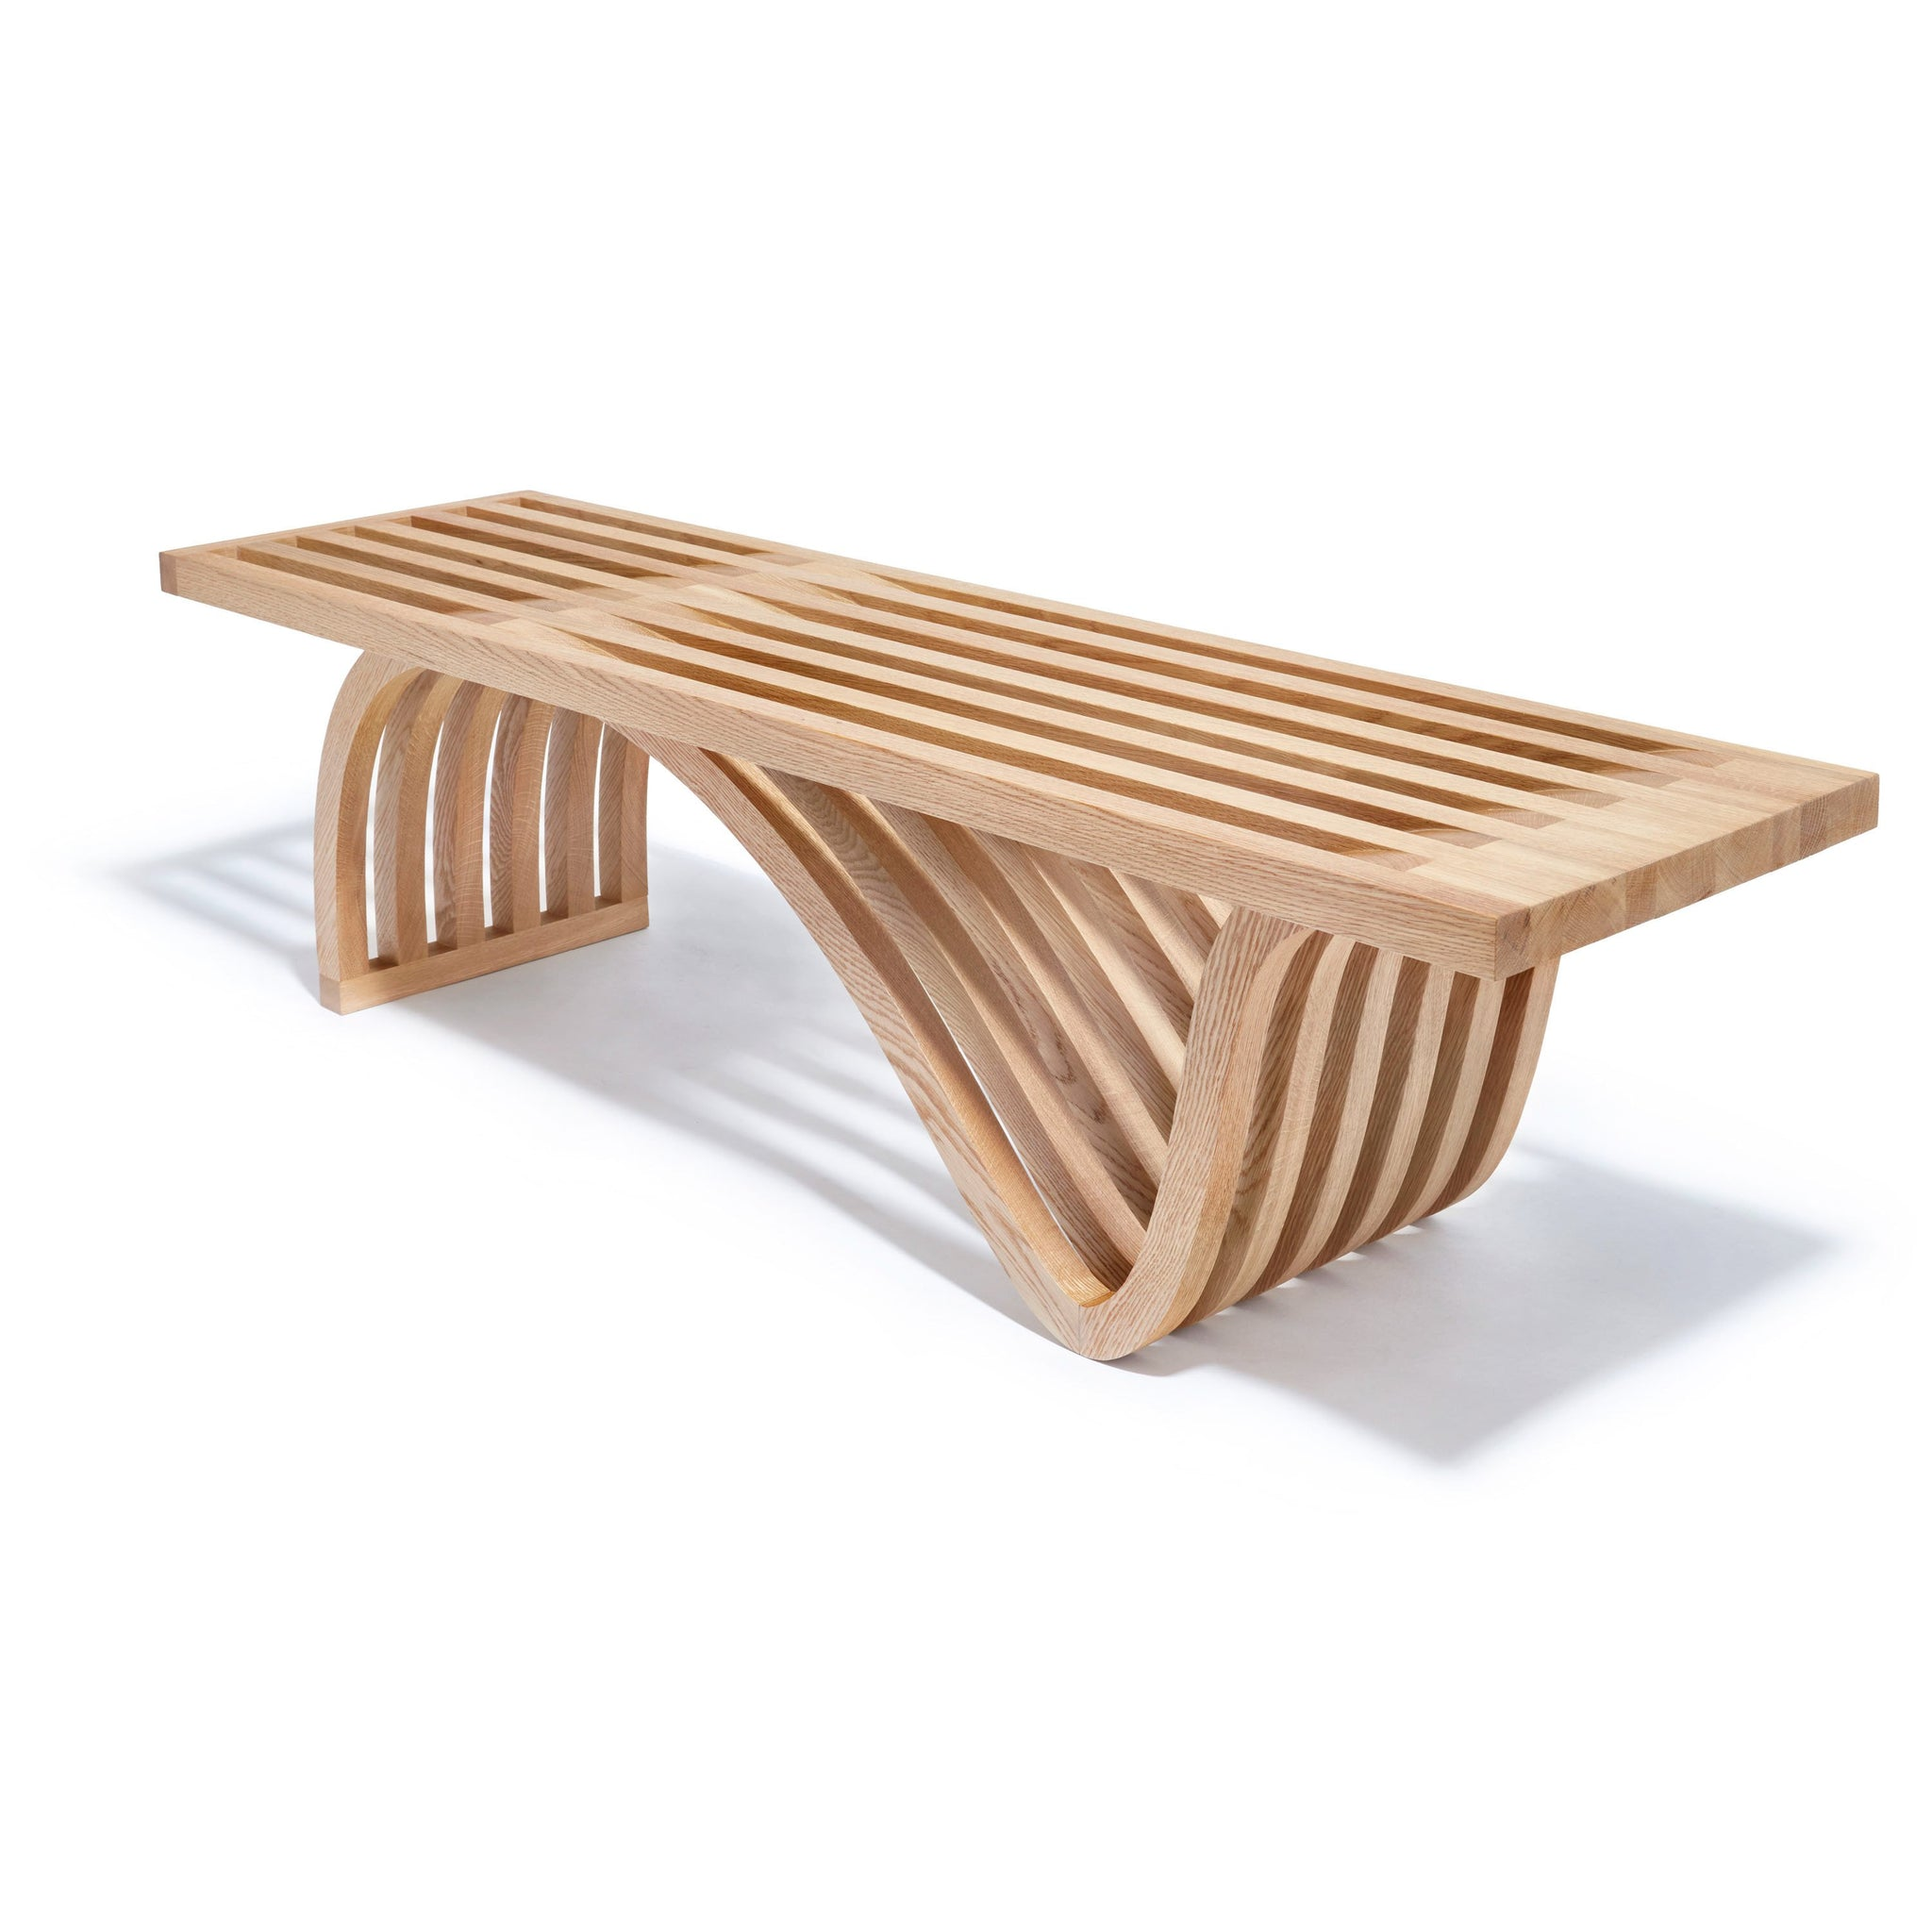 Picture of: Sculptural Slatted Oak Bench Coffee Table By Ot Tra Adaptations Ny